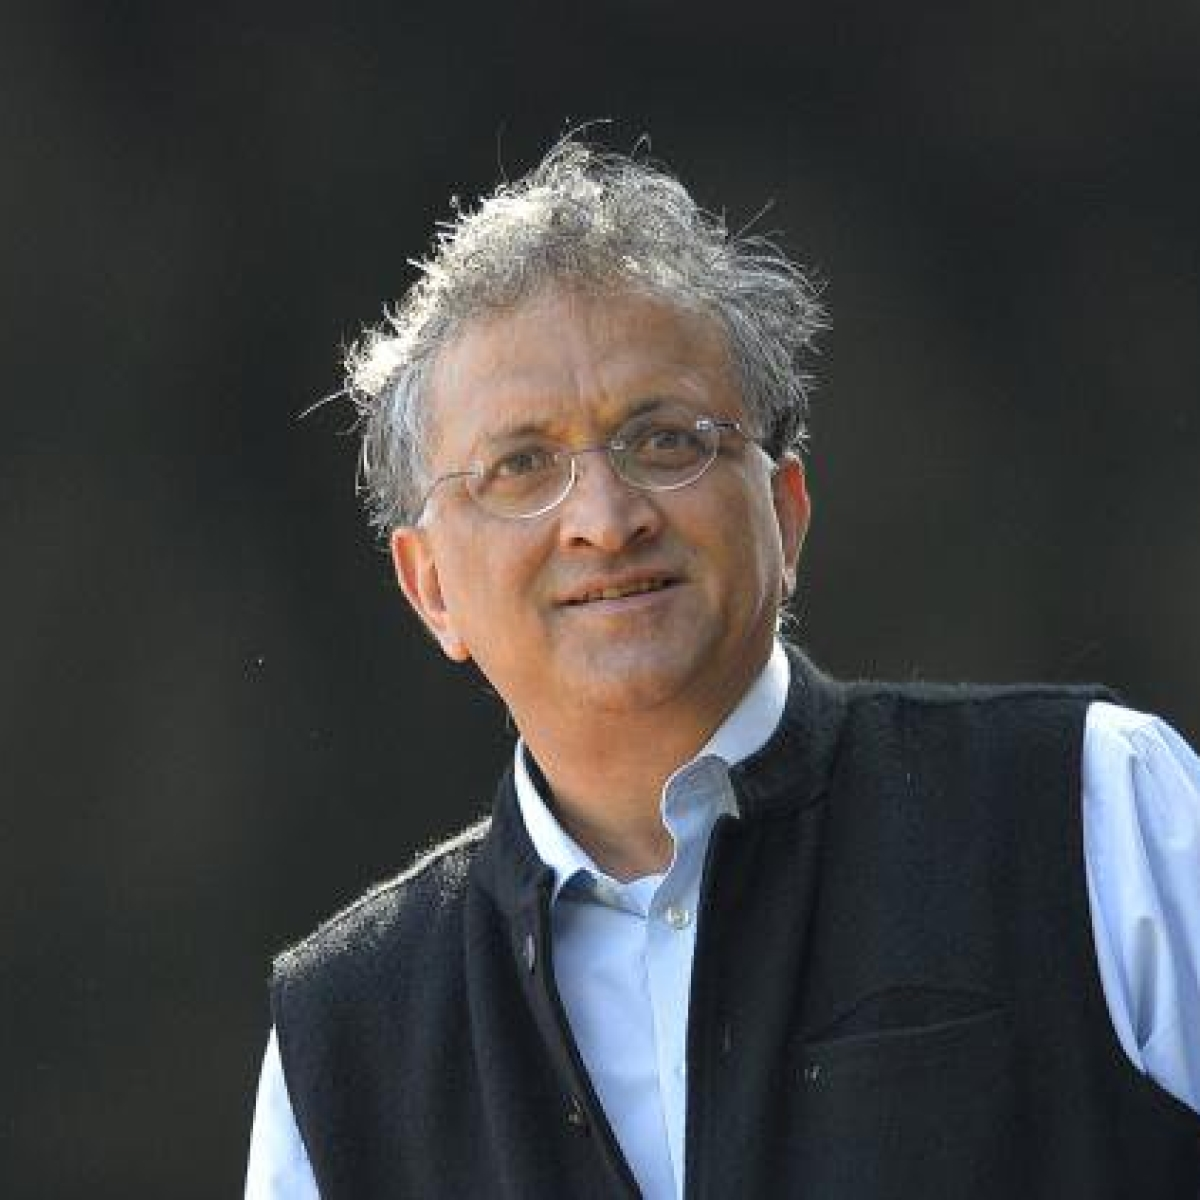 Statutory warning: Ramachandra Guha does not mean all he says